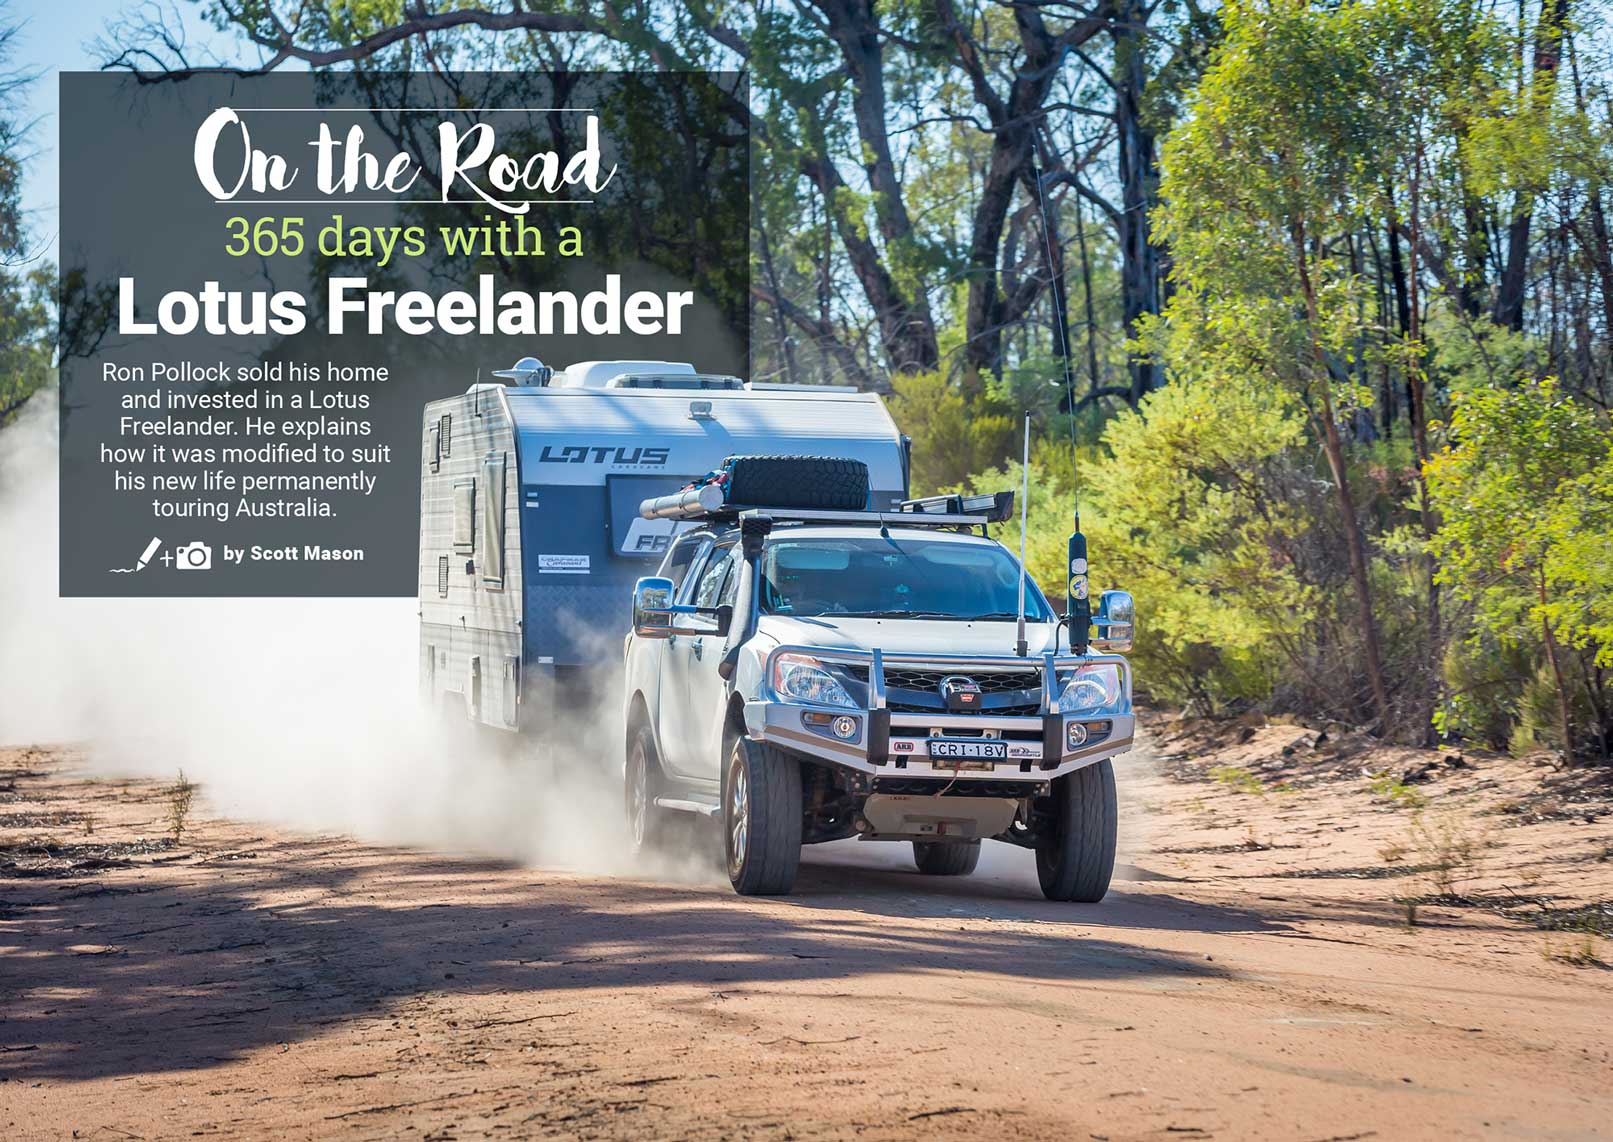 On the Road: 365 Days with a Lotus Freelander